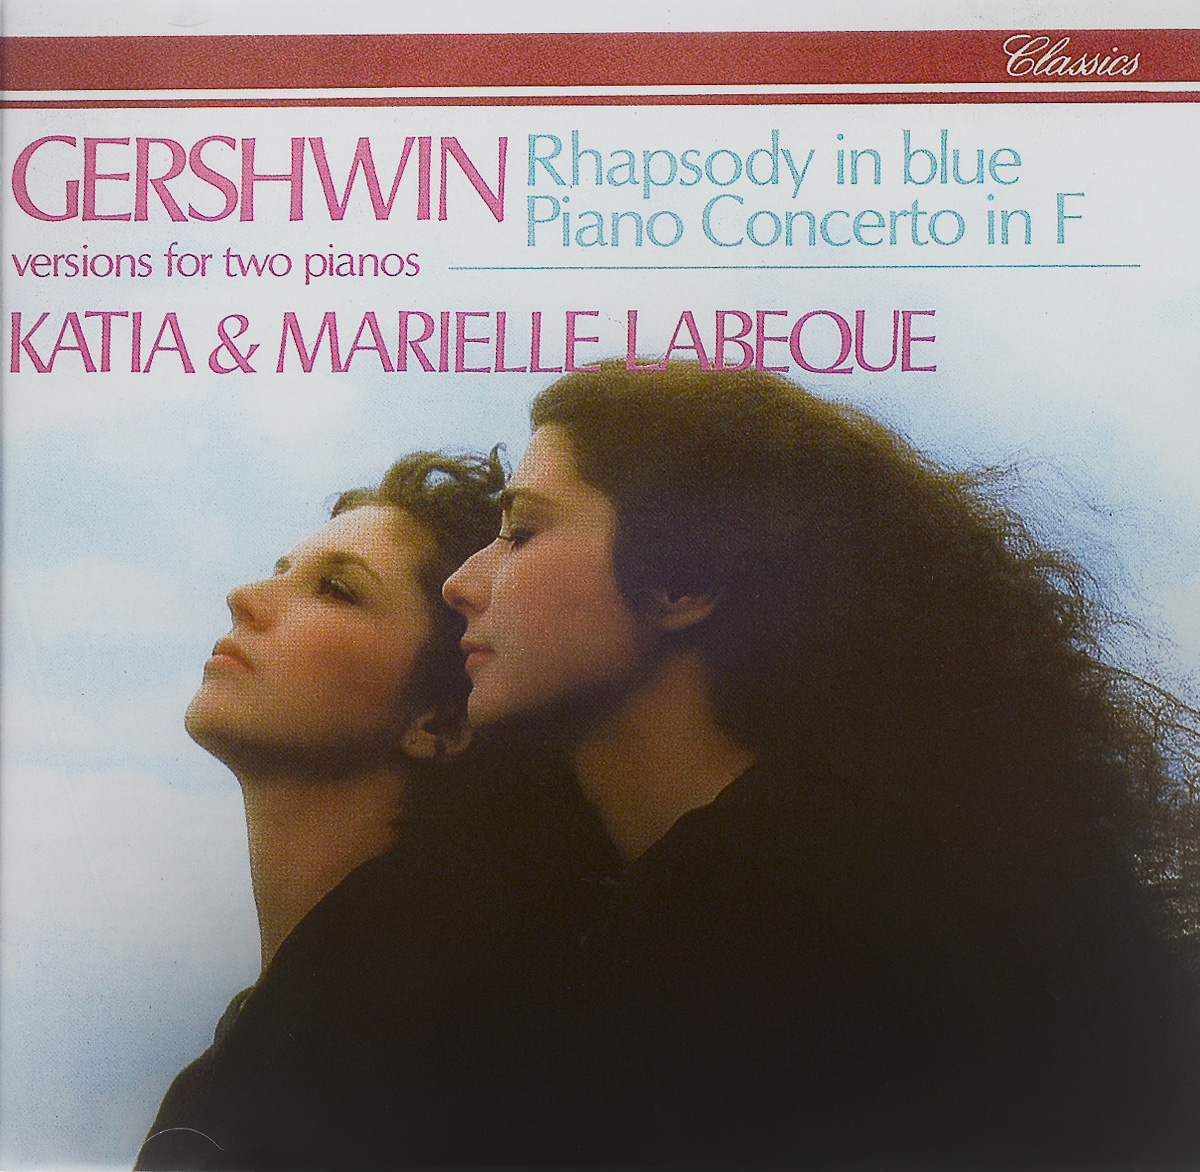 Катя Лабекю,Мариэль Лабекю Katia & Marielle Labeque. Gershwin. Rhapsody In Blue / Piano Concerto In F орион вайс buffalo philharmonic orchestra джоанн фаллета gershwin concerto in f rhapsody no 2 blu ray audio